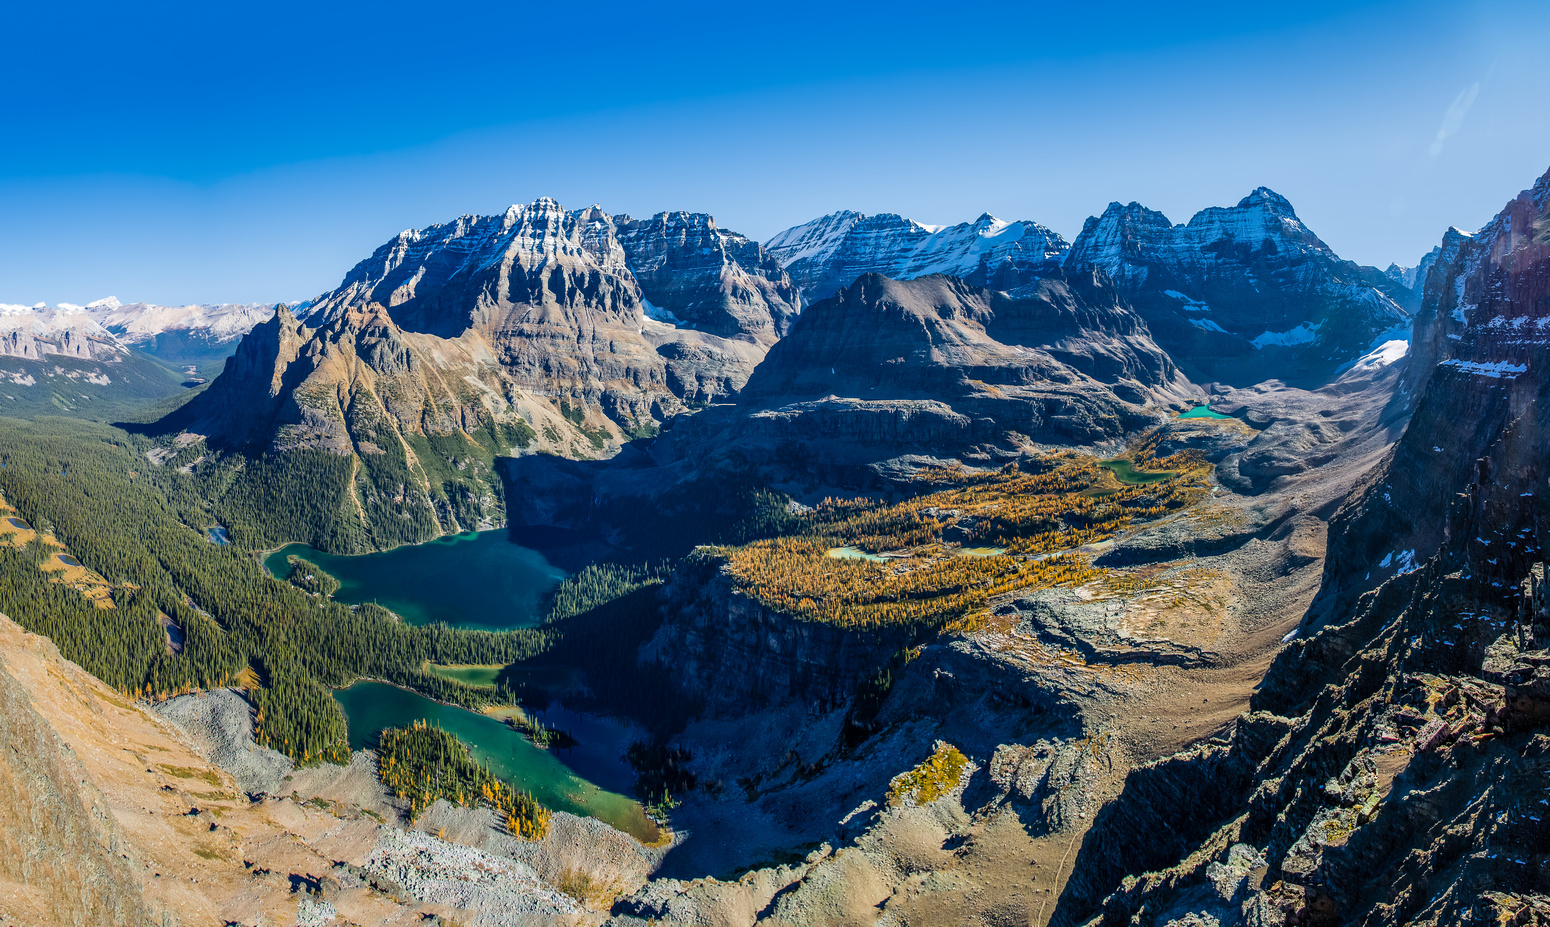 Wiwaxy, Victoria, Huber, Lefroy, Yukness, Ringrose, Hungabee and lakes (L to R), Mary Lake, Lake O'Hara, Moor Lakes, Hungabee Lake and Opabin Lake.